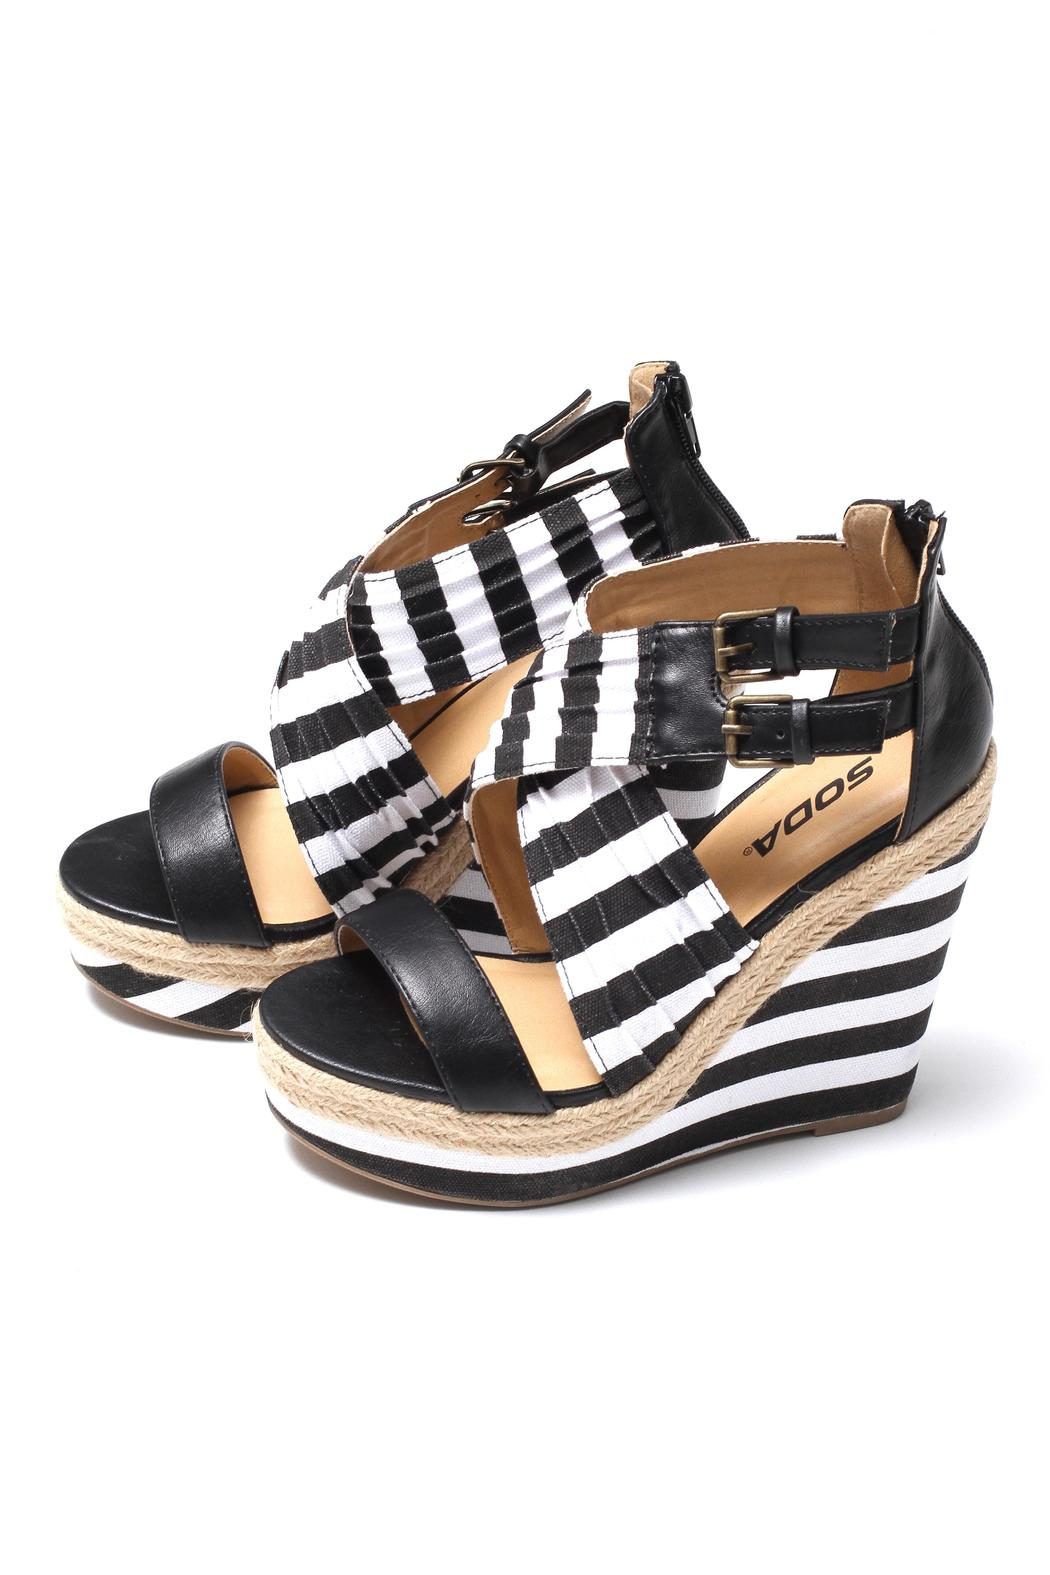 Soda Black White Wedge From Texas By B Amp B S Boutique